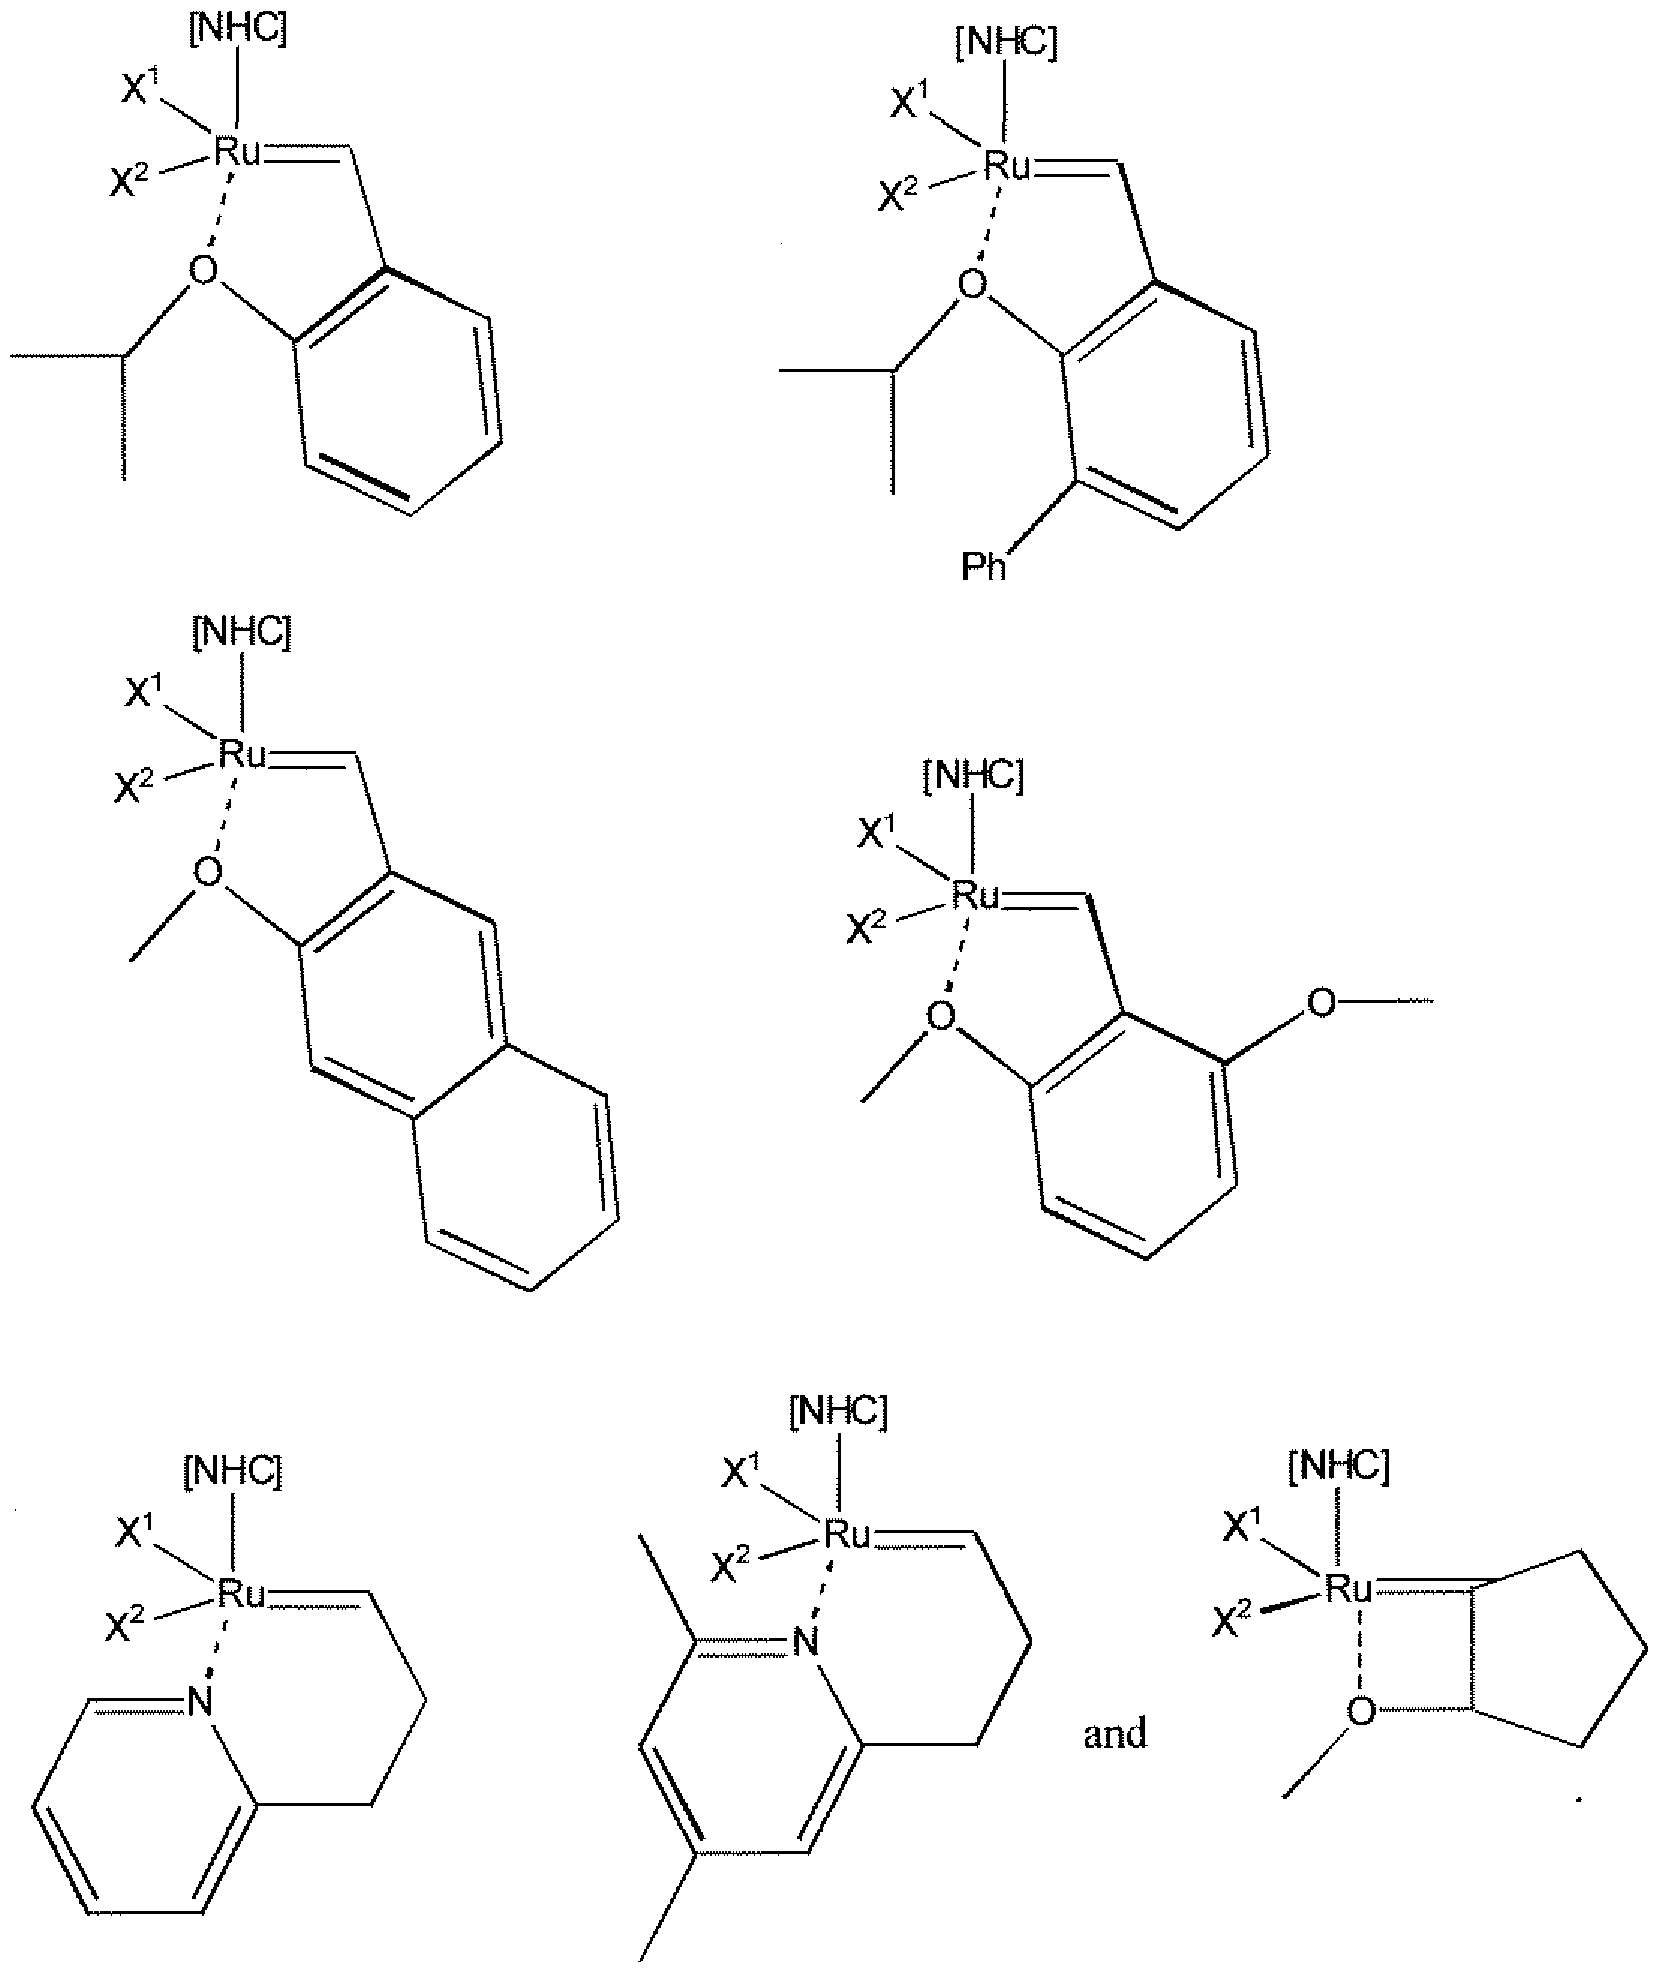 ruthenium catalyst metathesis First-generation catalyst in the 1960's, ruthenium trichloride was found to catalyze olefin metathesis processes were commercialized based on these discoveries.